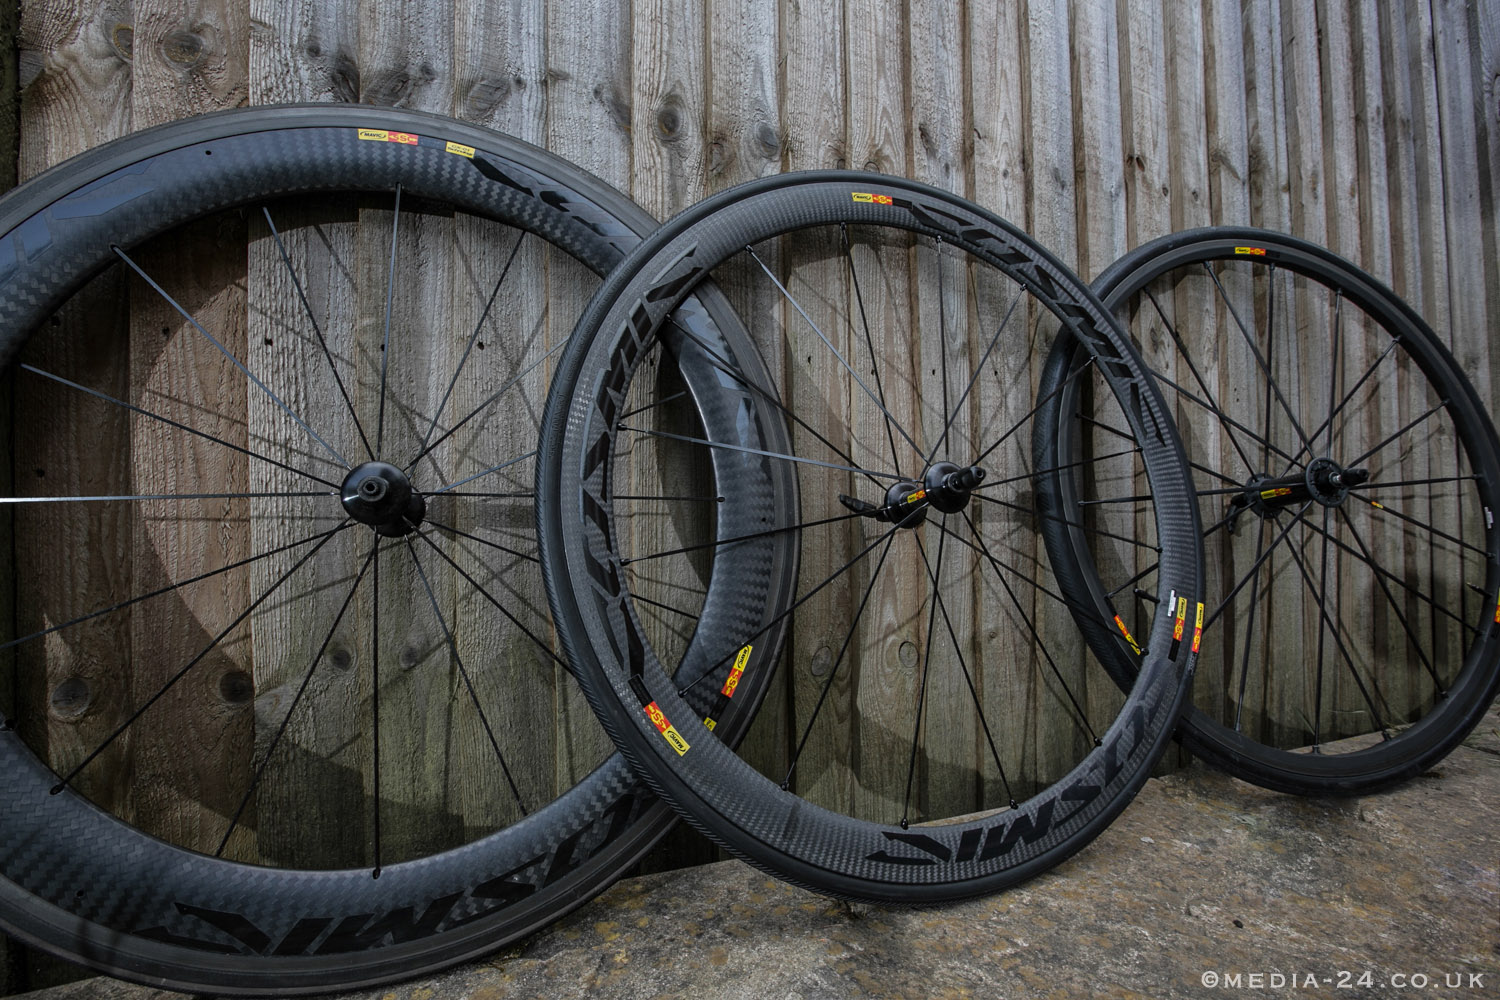 Wheels, pic: ©Media24, submitted by Mike Cotty, used with permission